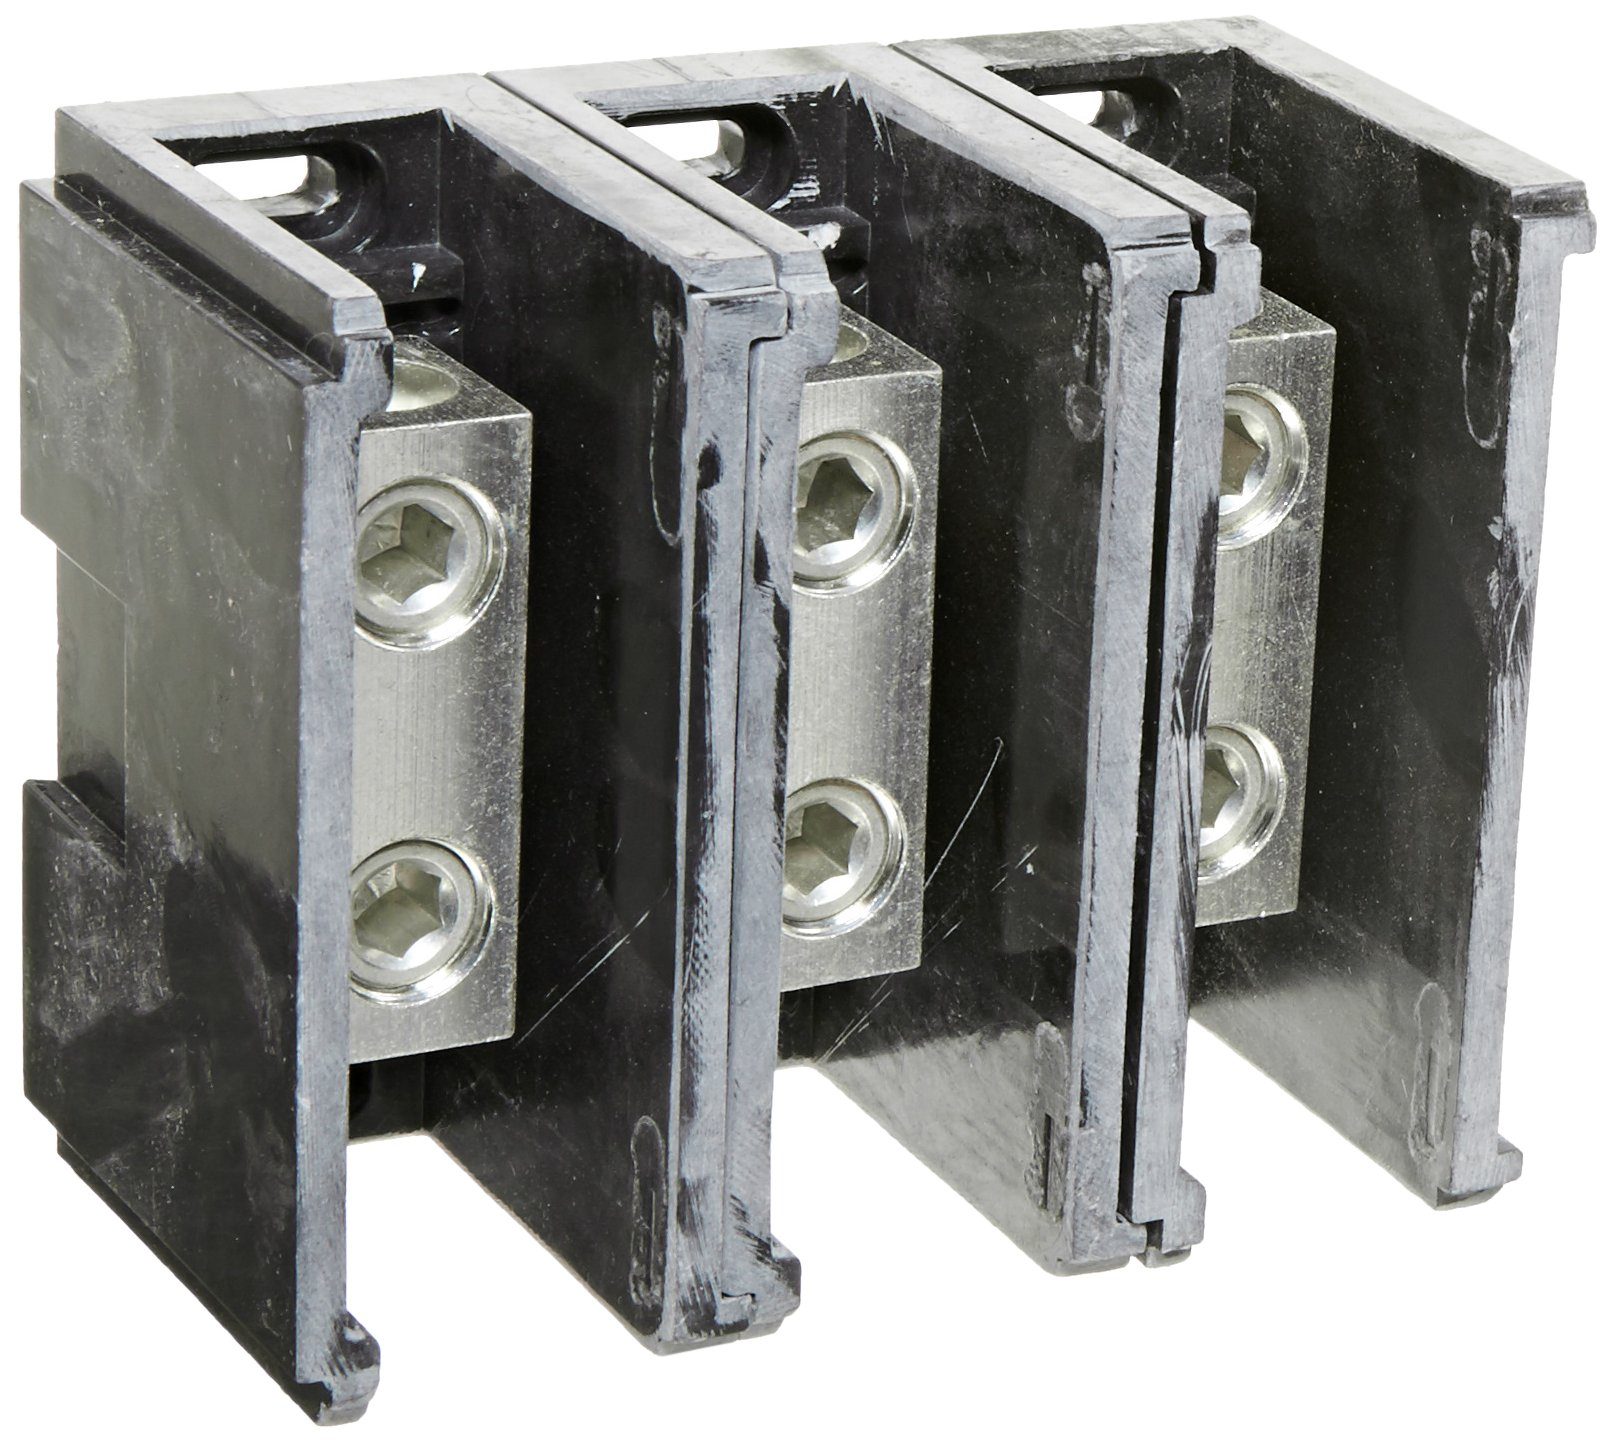 Power Distribution and Terminal Block, Connector Blok - Splicer/Reducers, 250MCM-6 AWG Line and 250MCM-6 AWG Load Side Configuration, 1.71'' Width, 2.62'' Height, 4.00'' Length